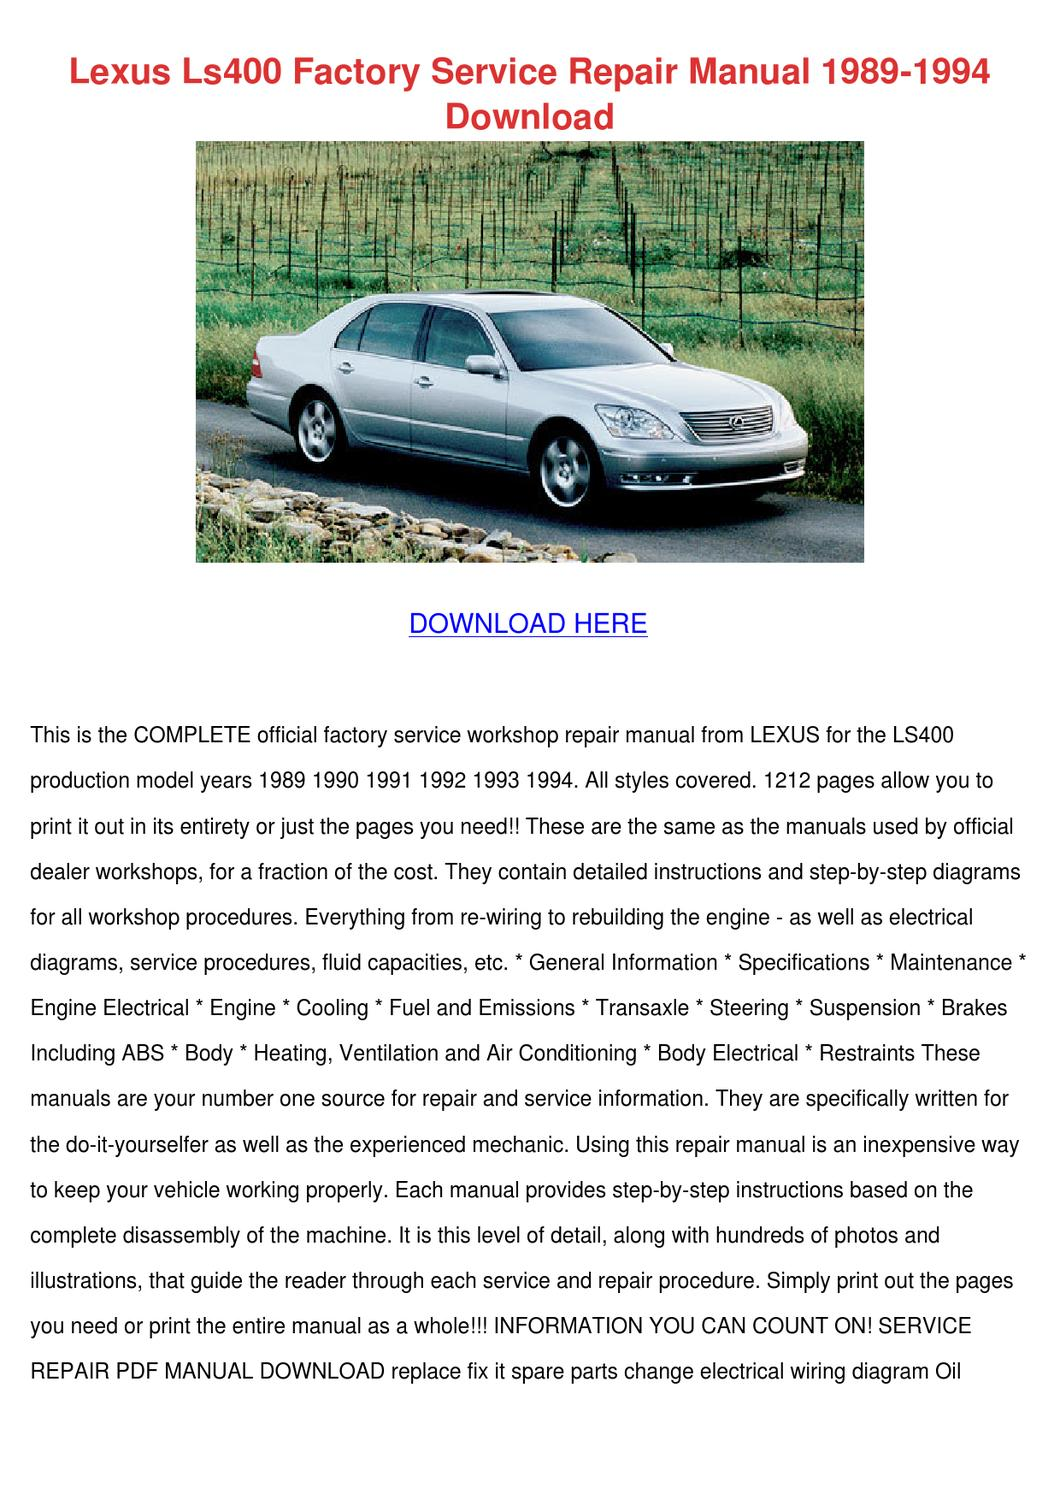 Lexus Ls400 Factory Service Repair Manual 198 By Noreen Meilleur Issuu Gs430 Electric Cooling Fan System Wiring Diagram